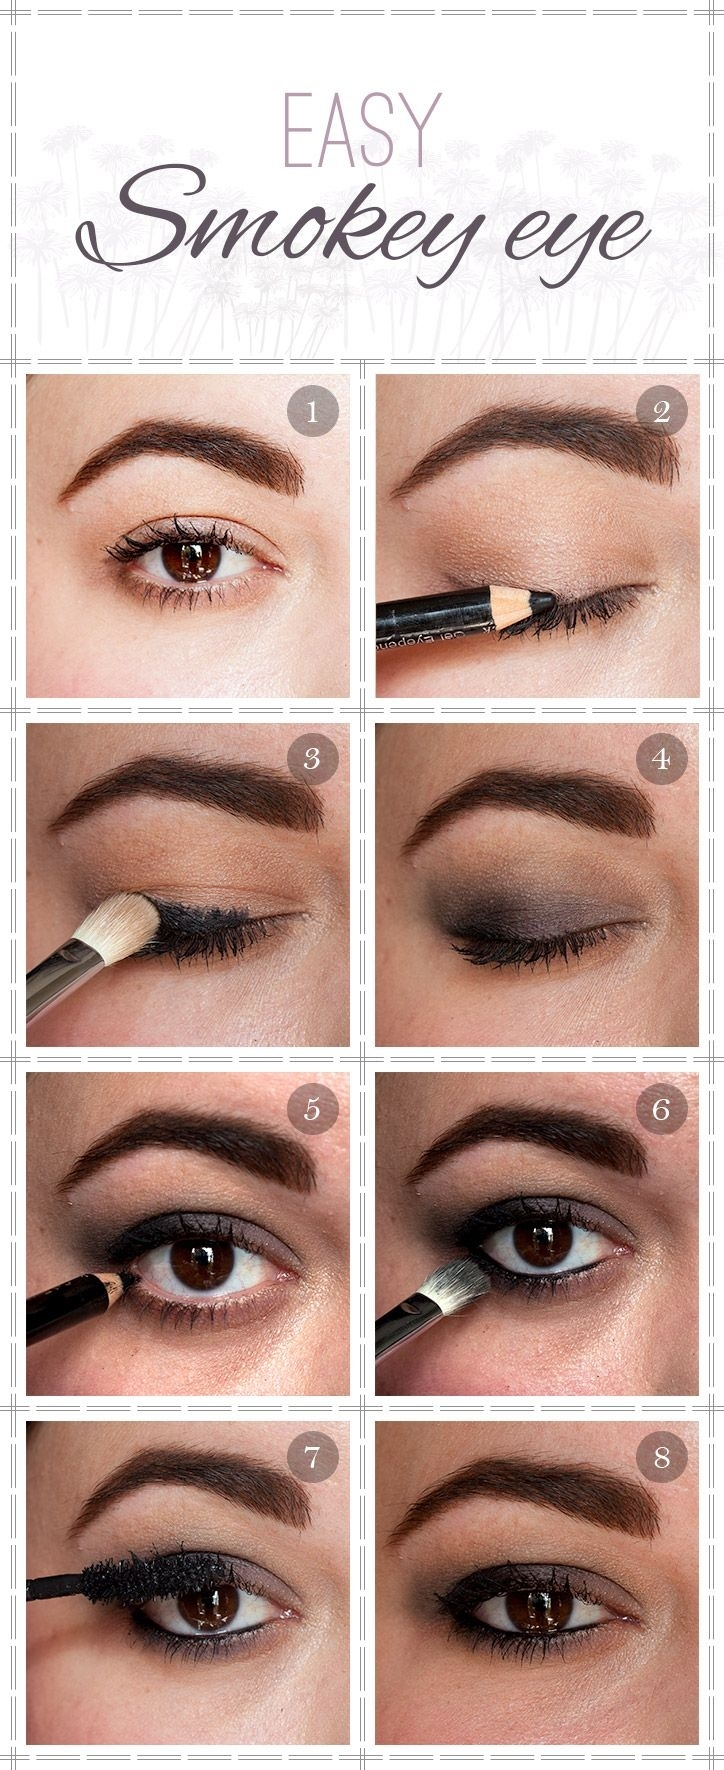 Easy Smokey Eye Tutorial | Beauty Tips | Pinterest | Maquillaje throughout Easy Smokey Eye Makeup Tutorial